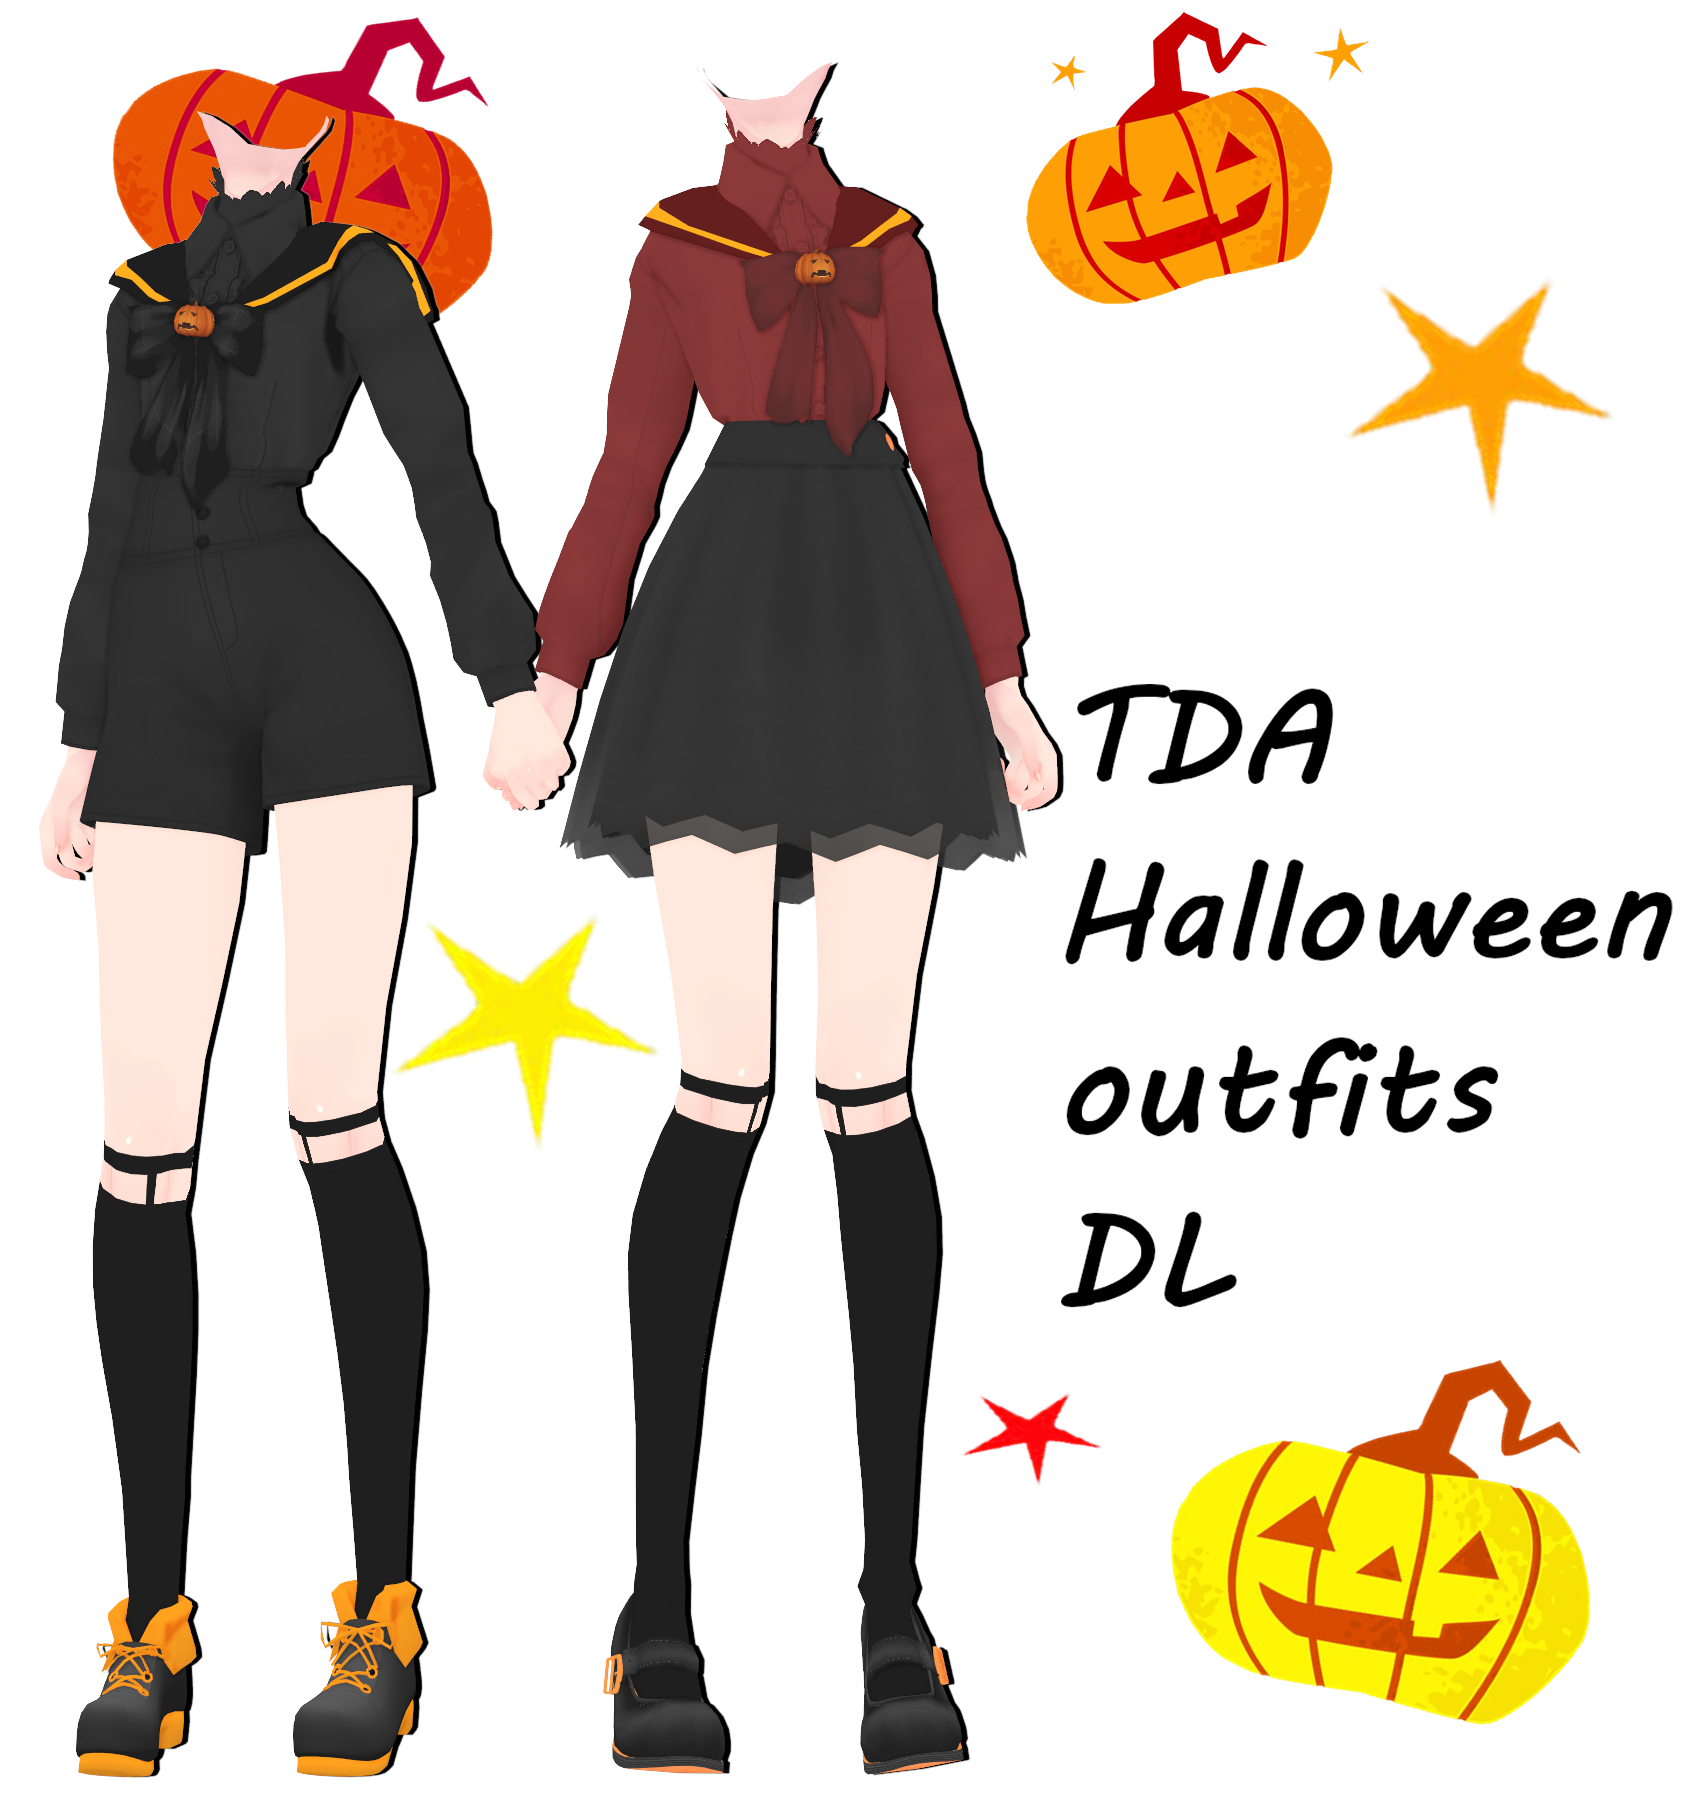 Clothing clipart spare clothes. Mmd dl halloween outfits